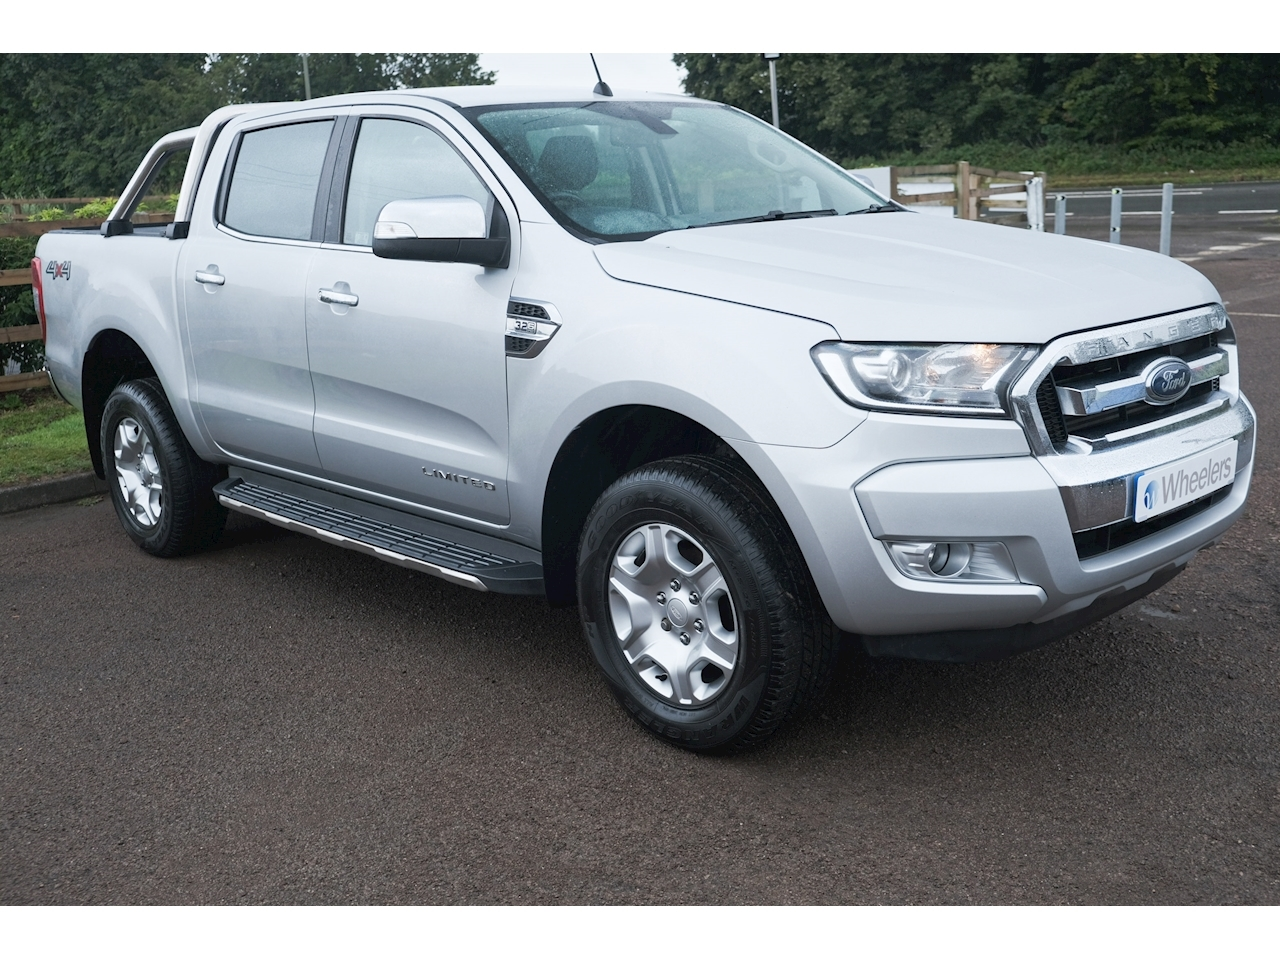 Ford Ranger Limited 4X4 Dcb Tdci Pick-Up 3.2 Manual Diesel